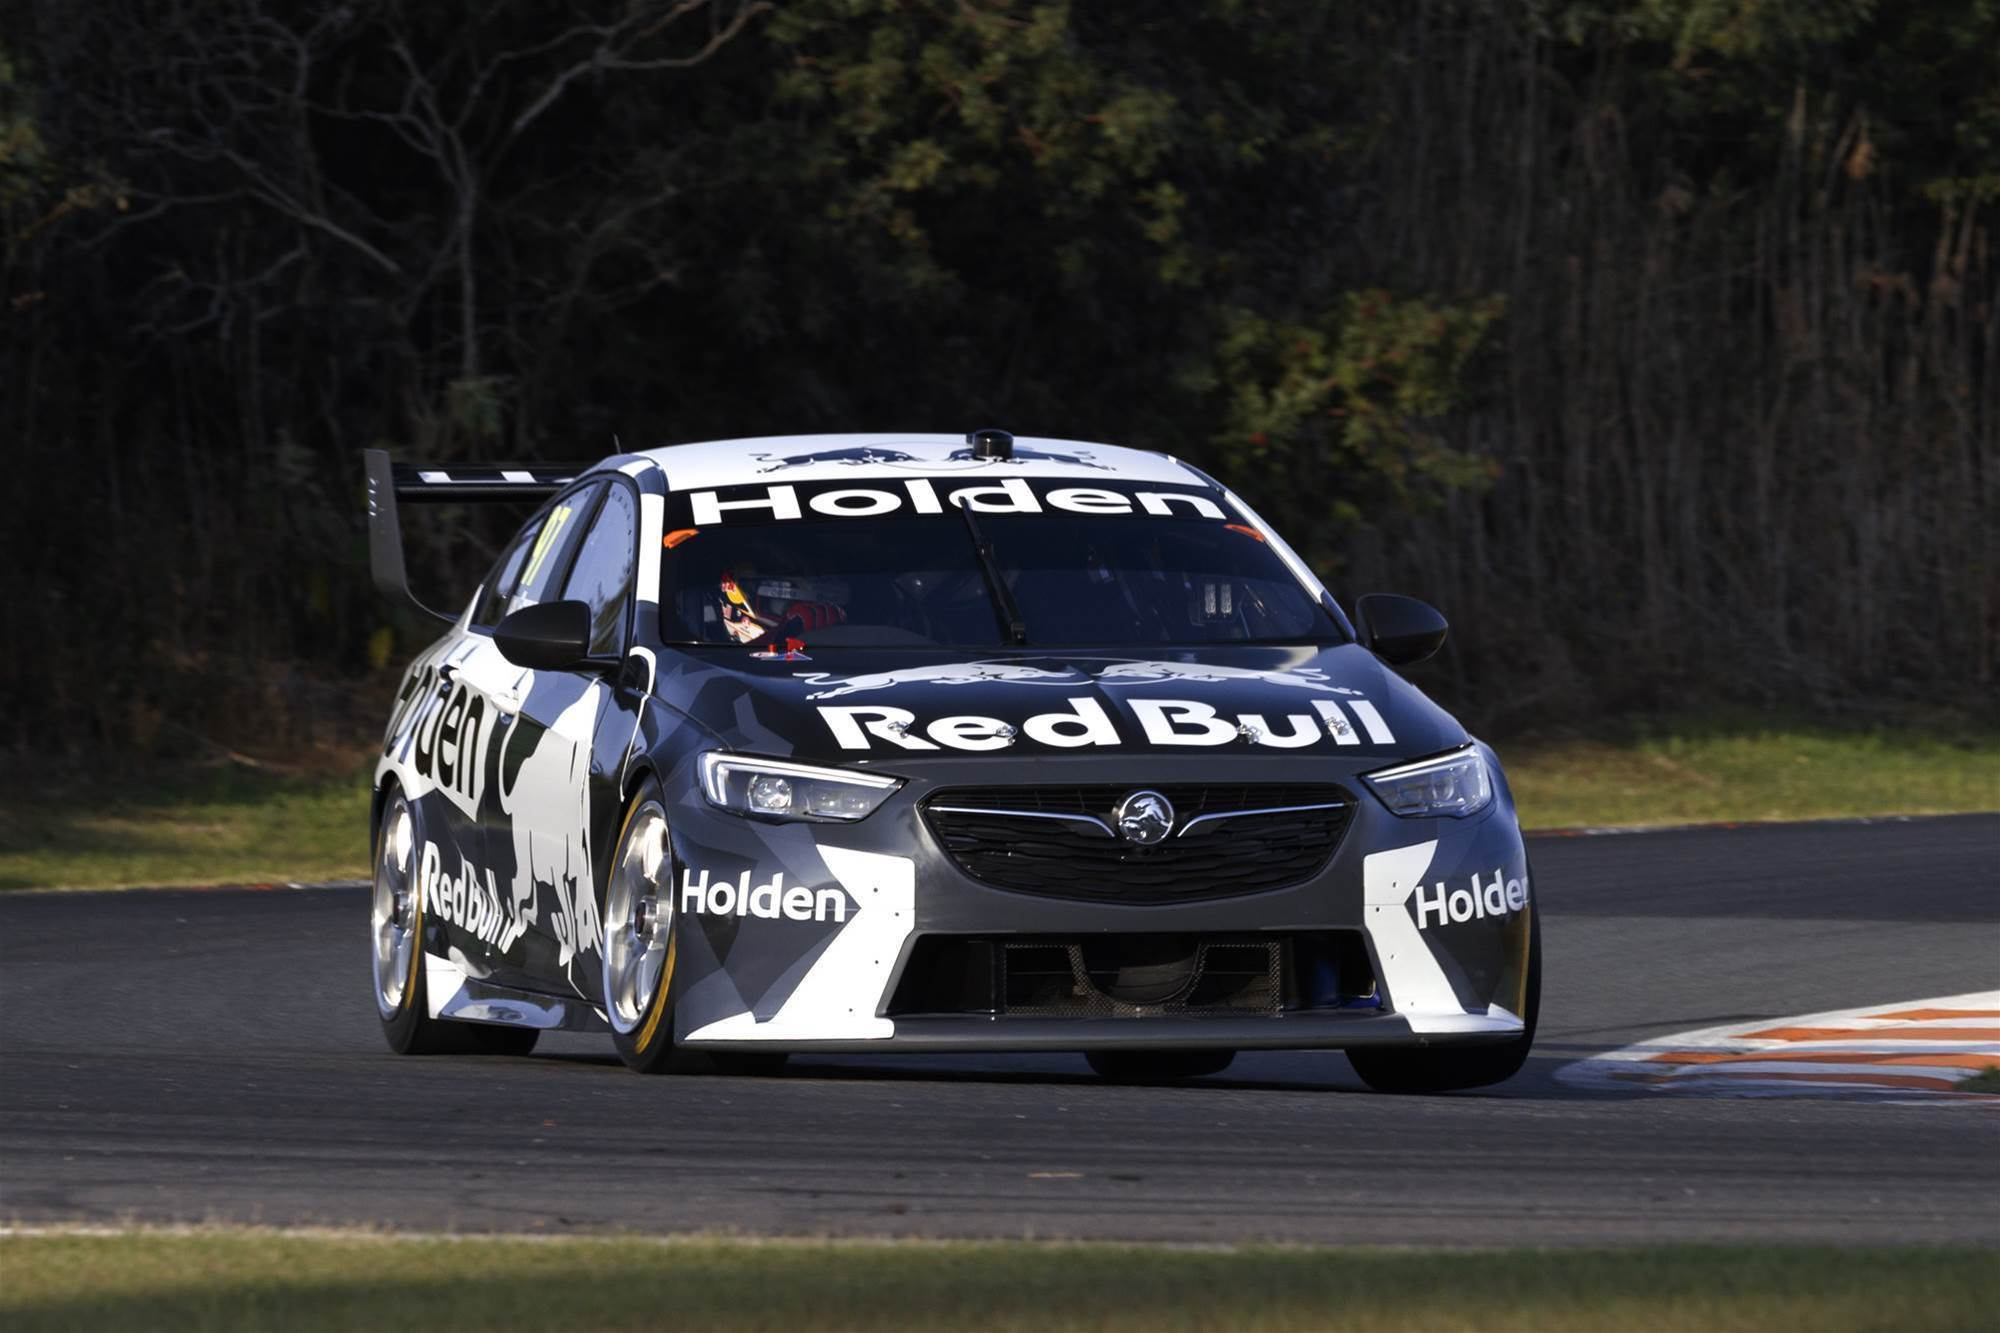 Holden shows off 2018 Supercars racer